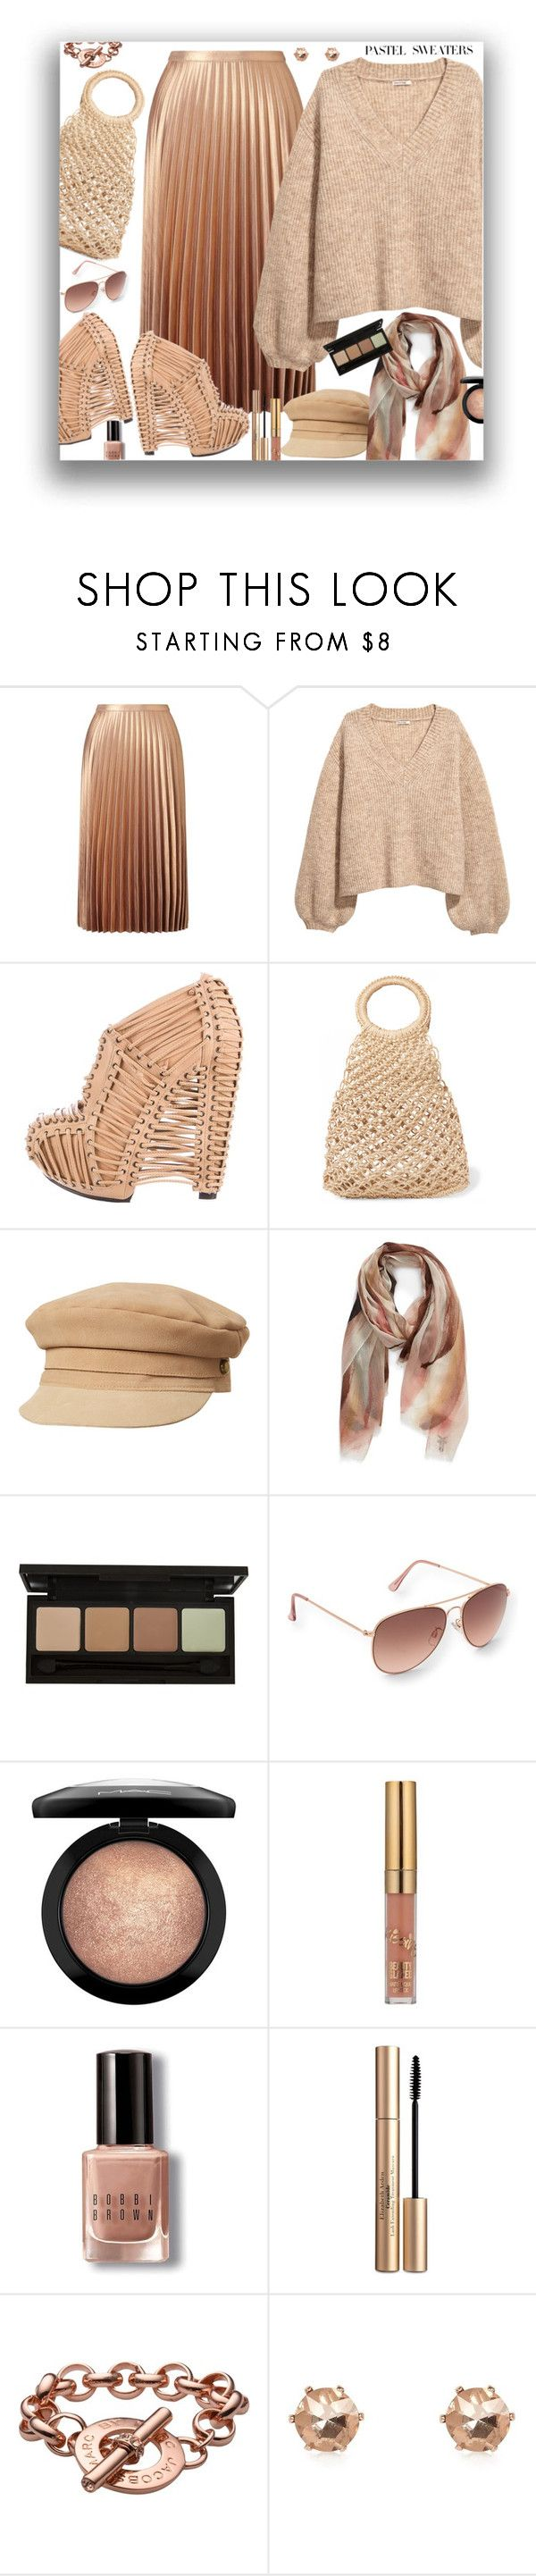 """""""Pastel Sweaters"""" by marionmeyer ❤ liked on Polyvore featuring Miss Selfridge, UN United Nude, Elizabeth and James, Lack of Color, Frye, Aéropostale, MAC Cosmetics, Bobbi Brown Cosmetics, Elizabeth Arden and Marc by Marc Jacobs"""